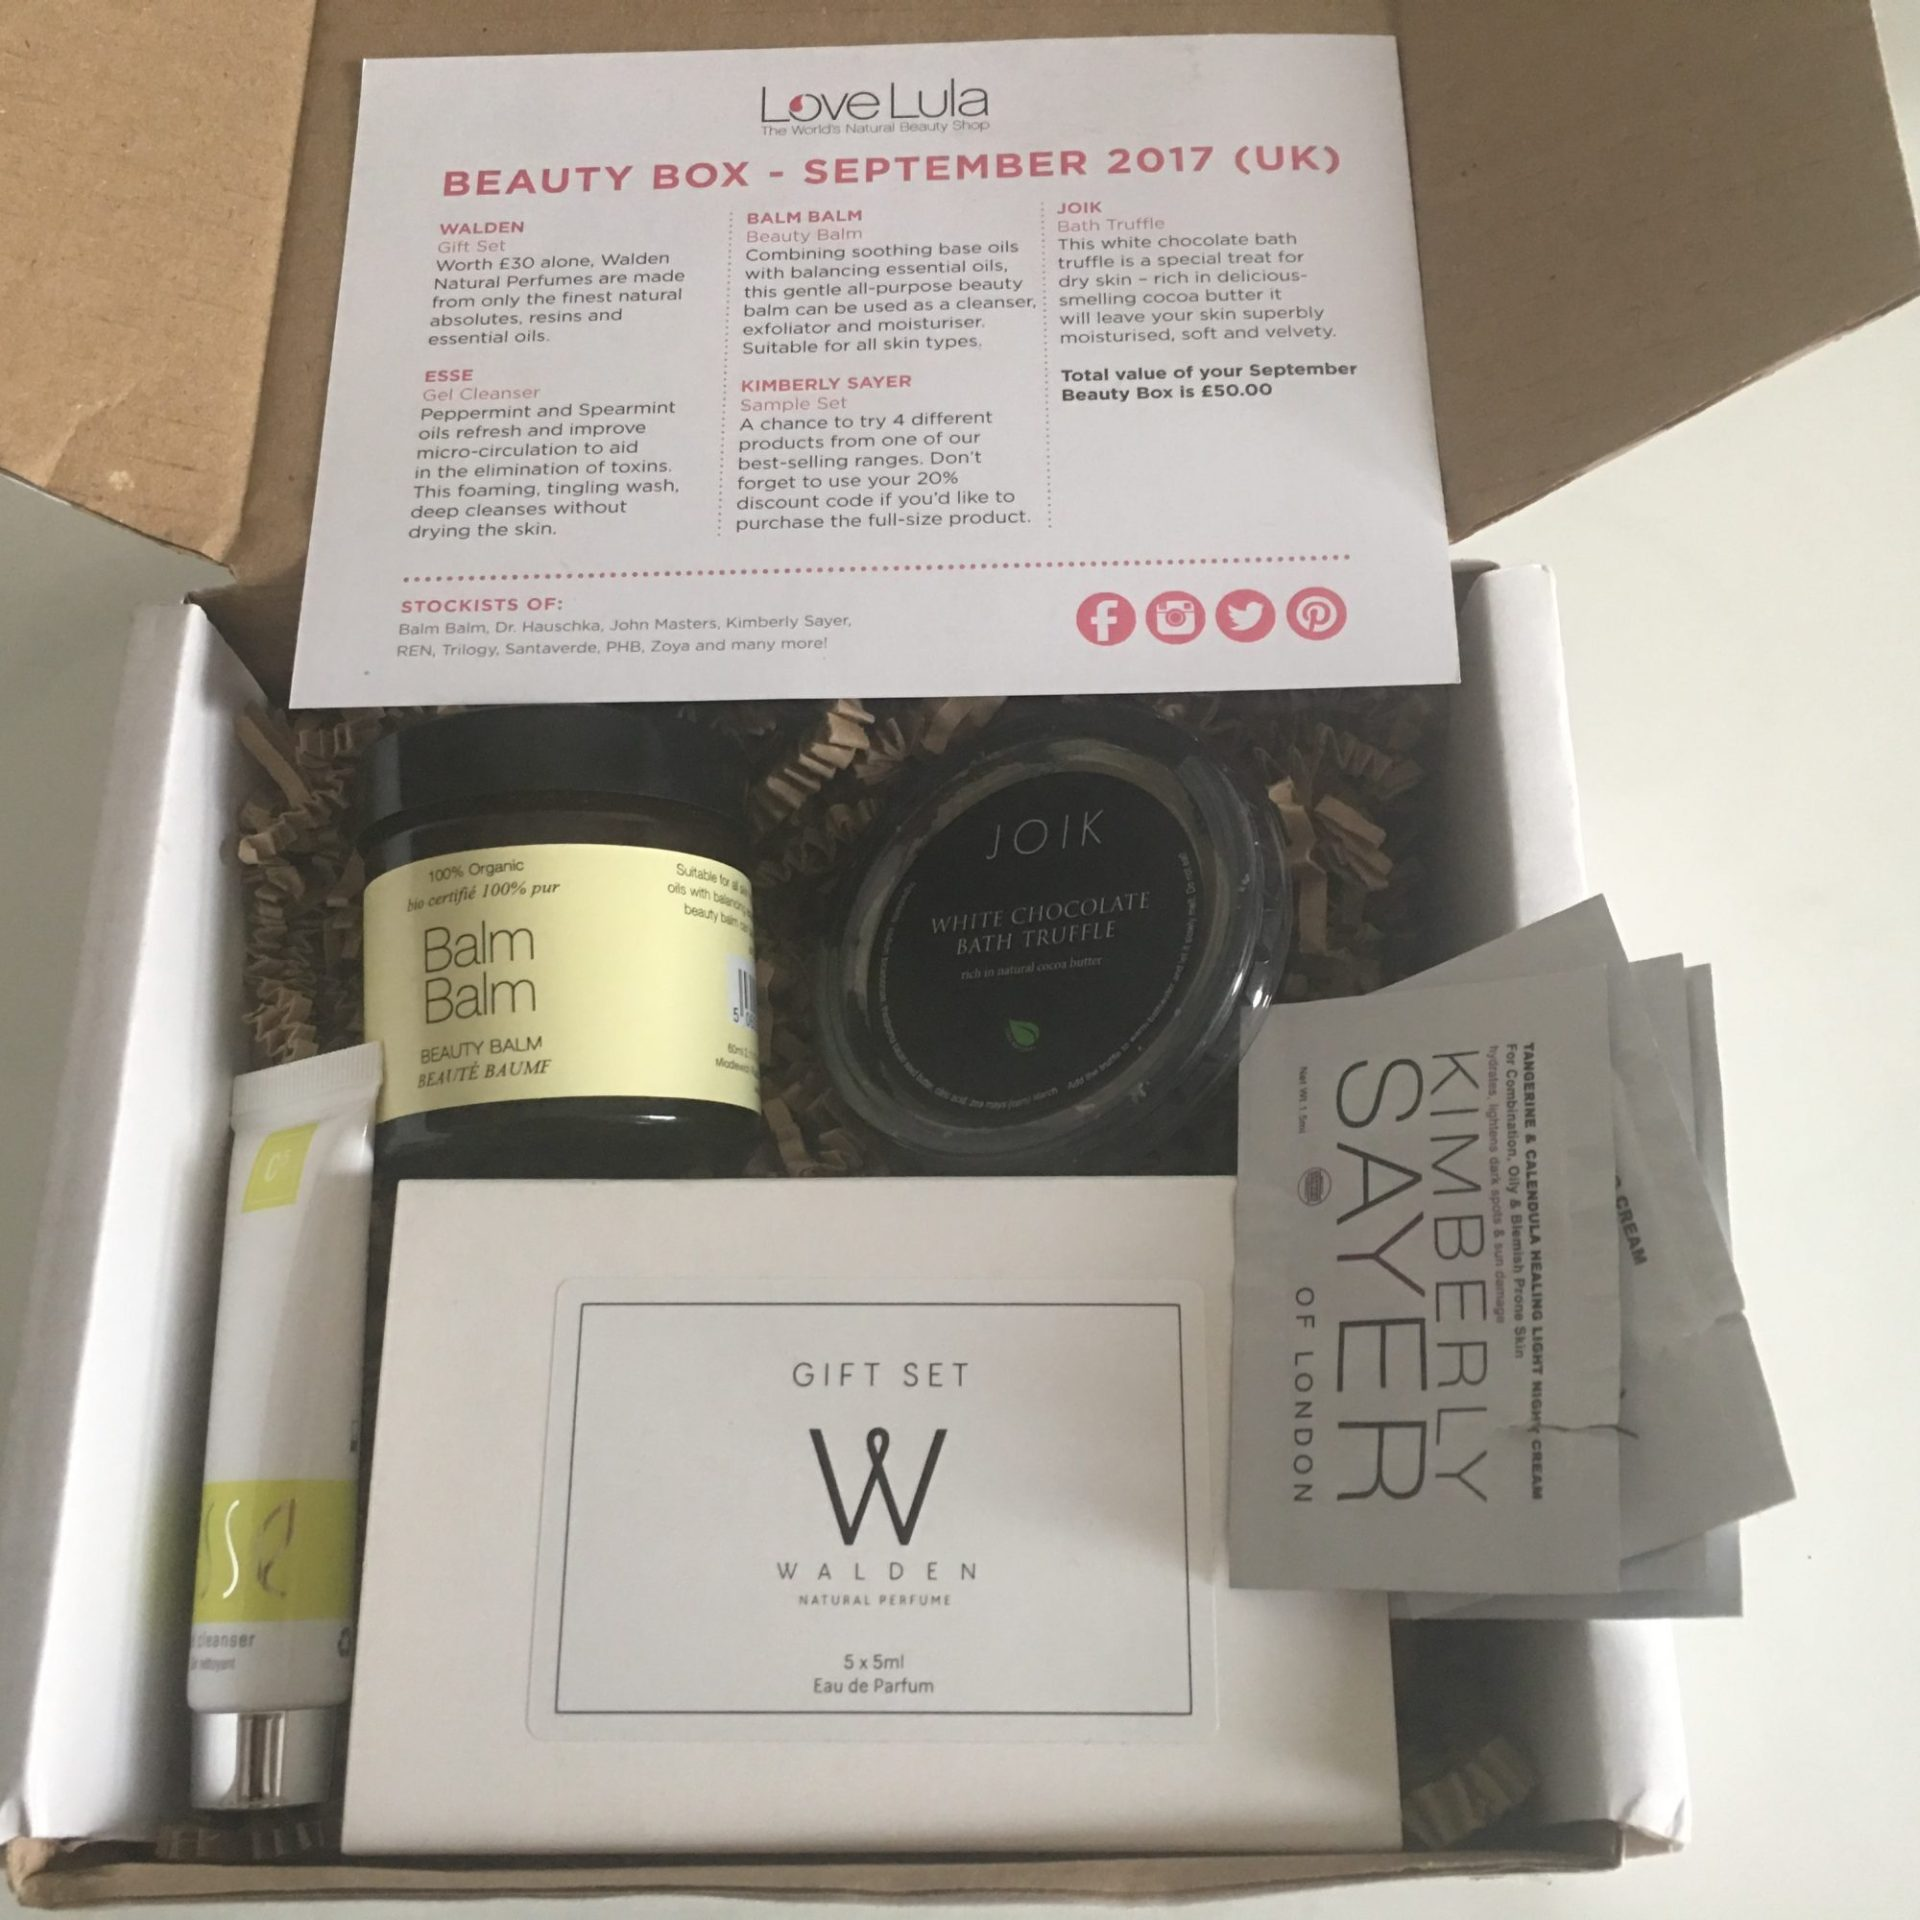 LoveLula Beauty Box - September 2017